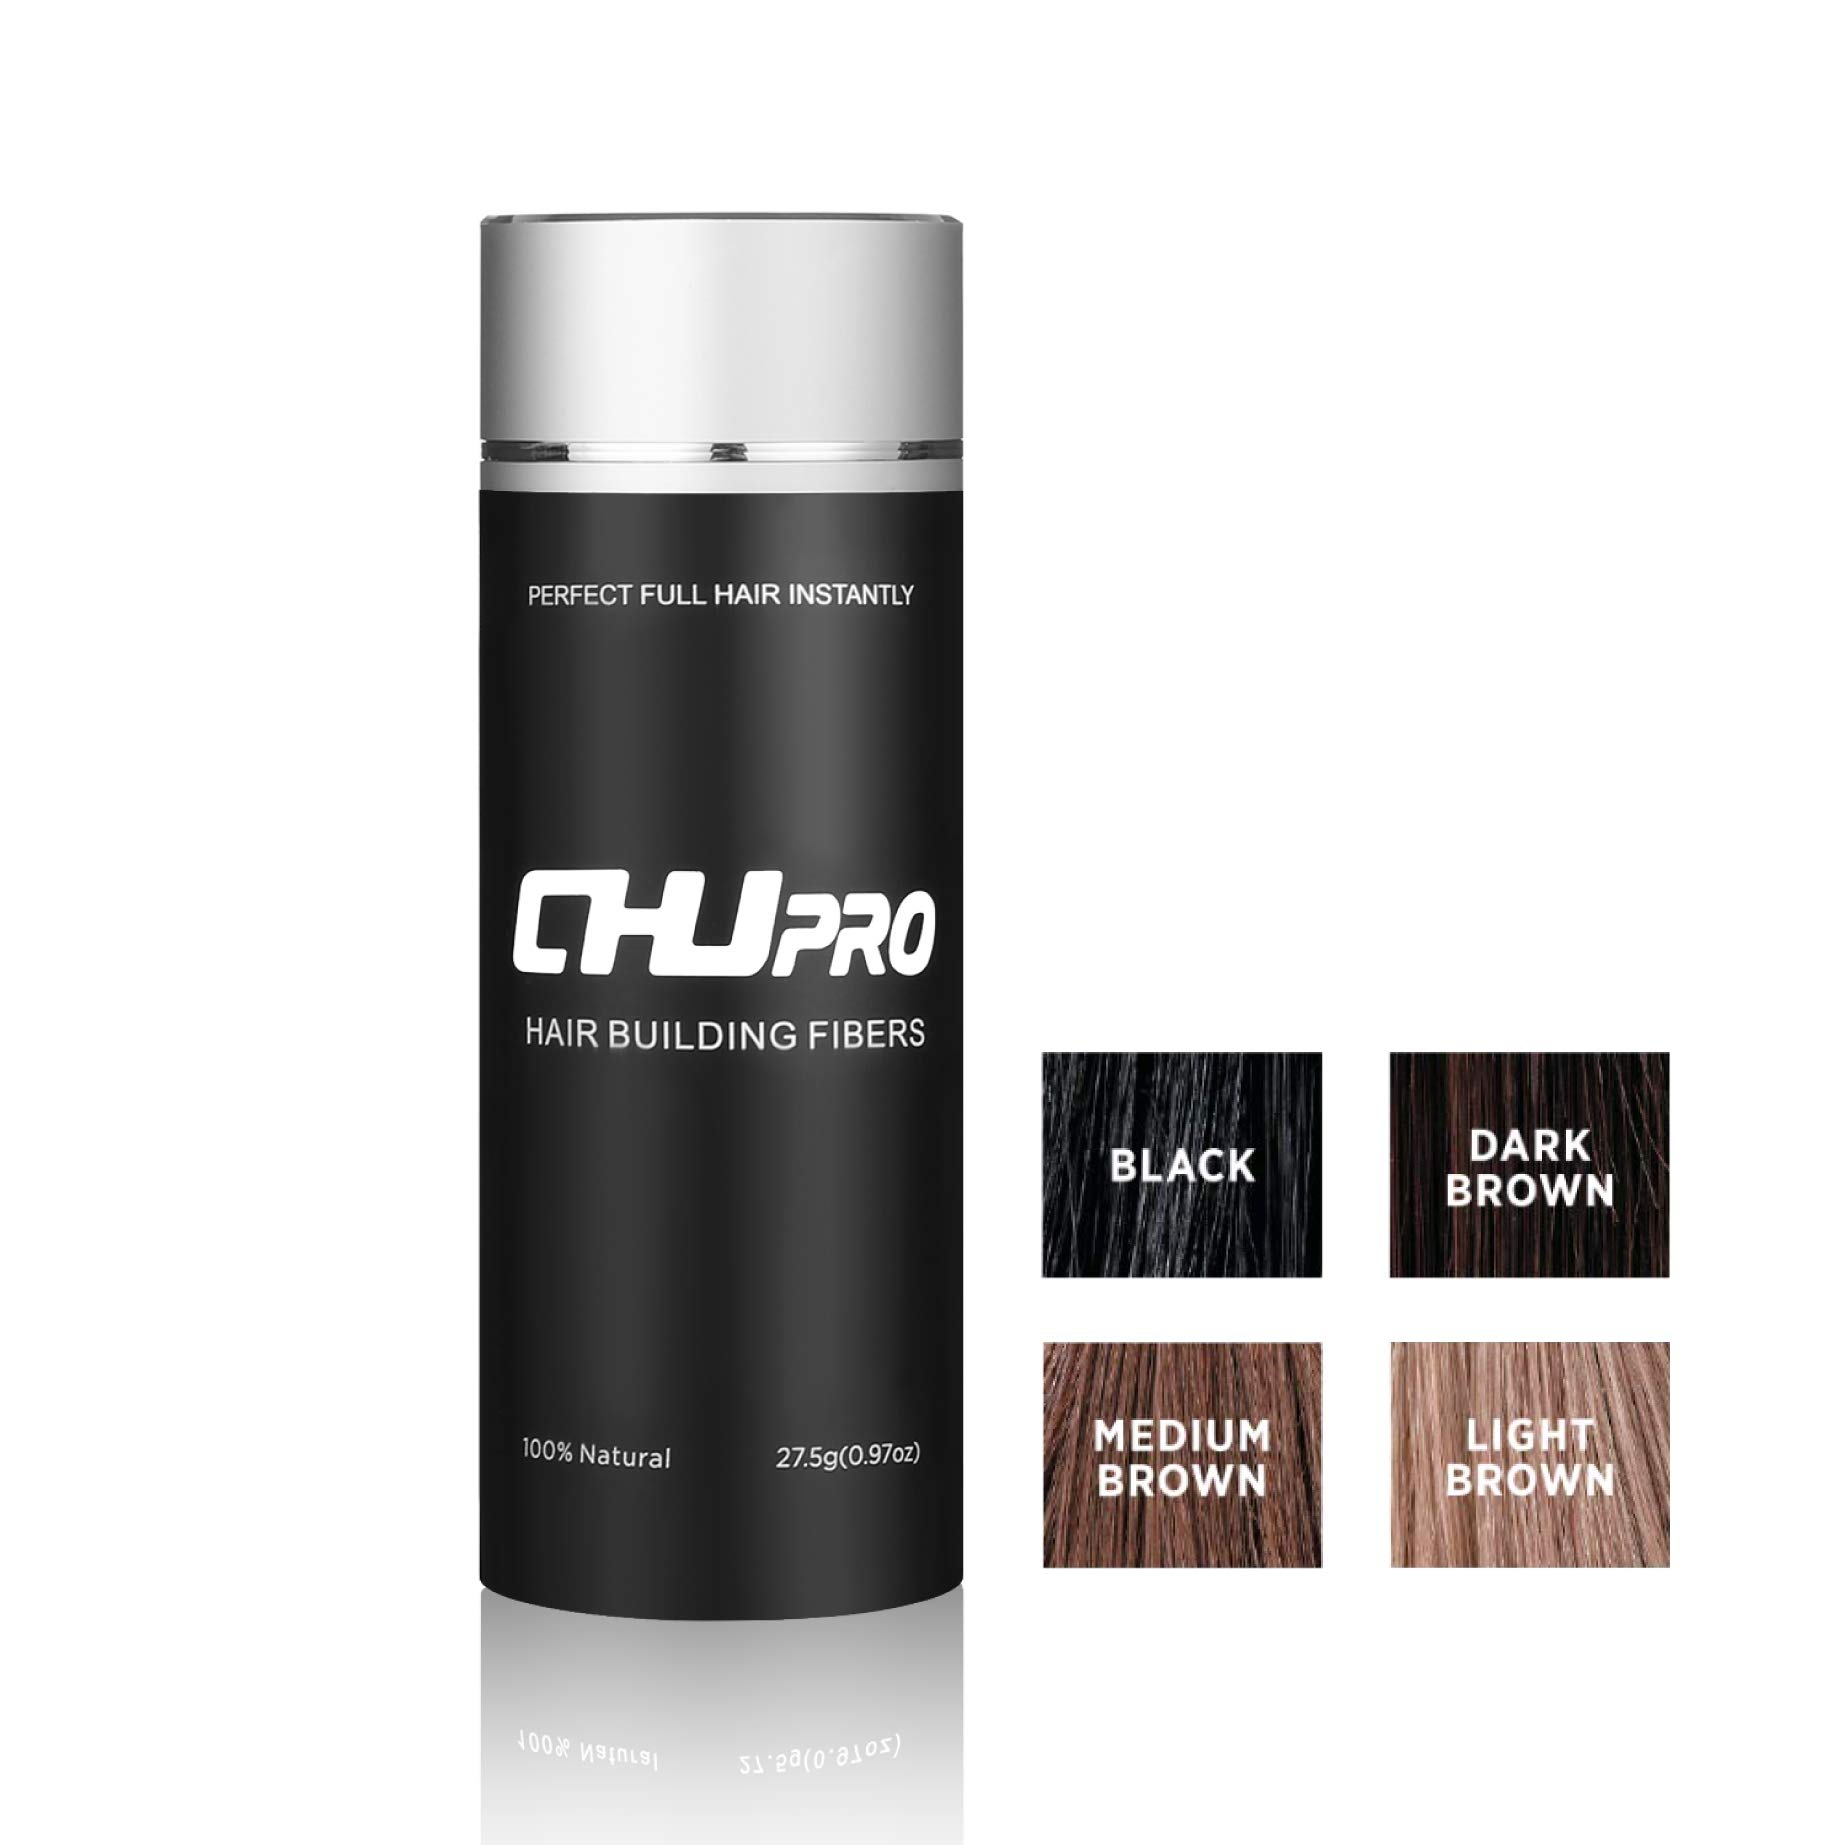 CHJPRO Landscaping Hairline Expert Hair Building Fibers-Color Powder Conceal Women& Men's Hair Thinning/Partial Hair Loss,Light Brown/Medium Brown/Dark Brow (Dark Brown)